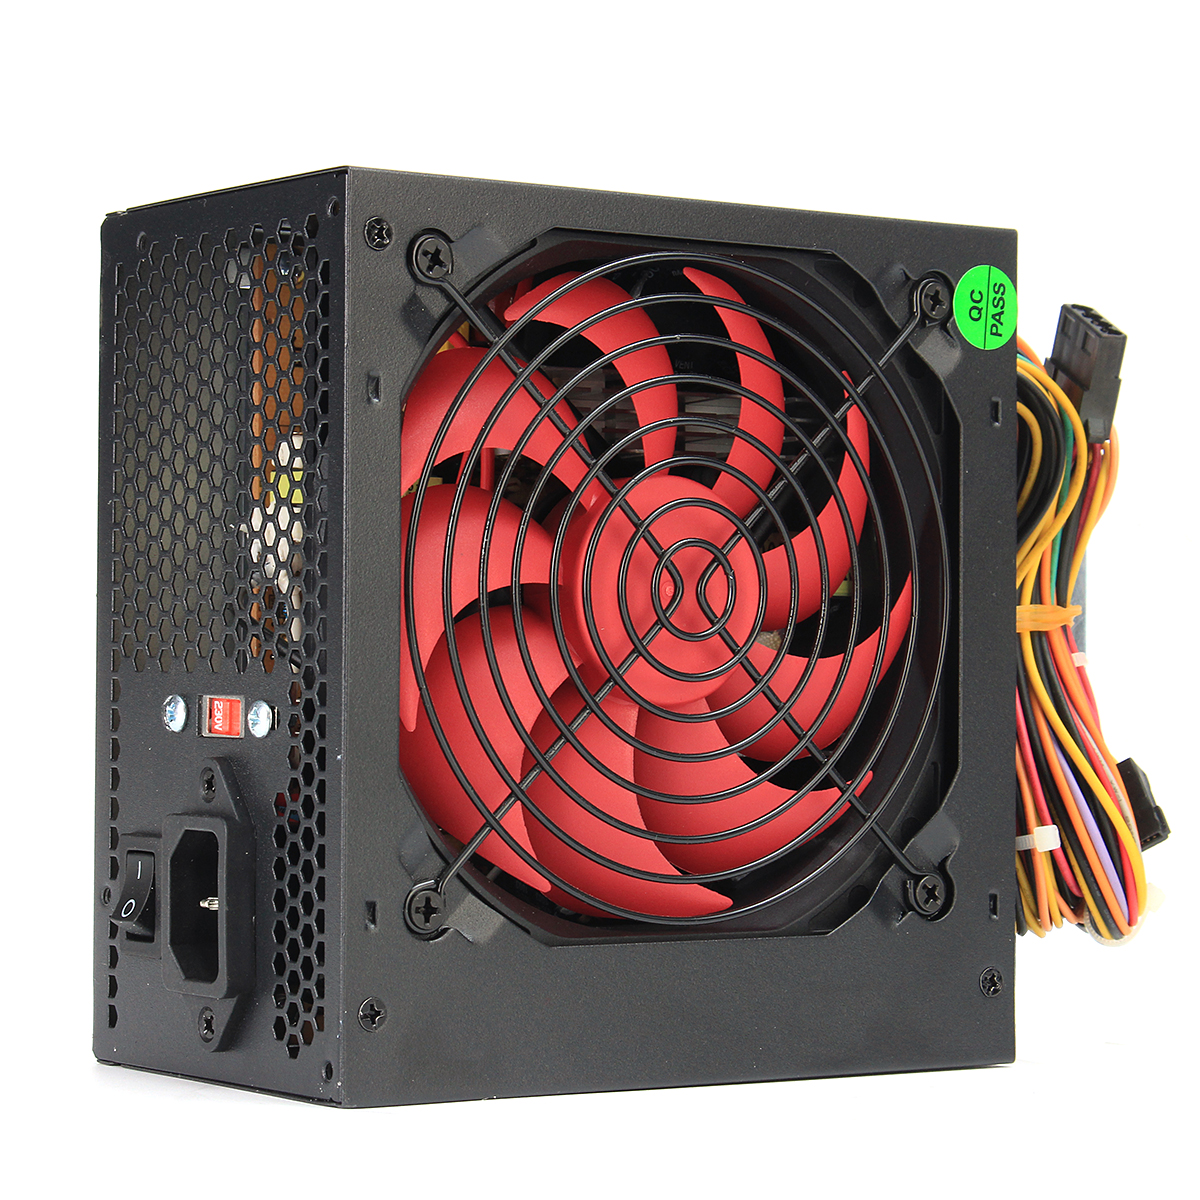 110V-230V 12cm Fan ATX Power Supply Fan 24 Pin PCI SATA ATX 12V Molex Connect 80+ Gold